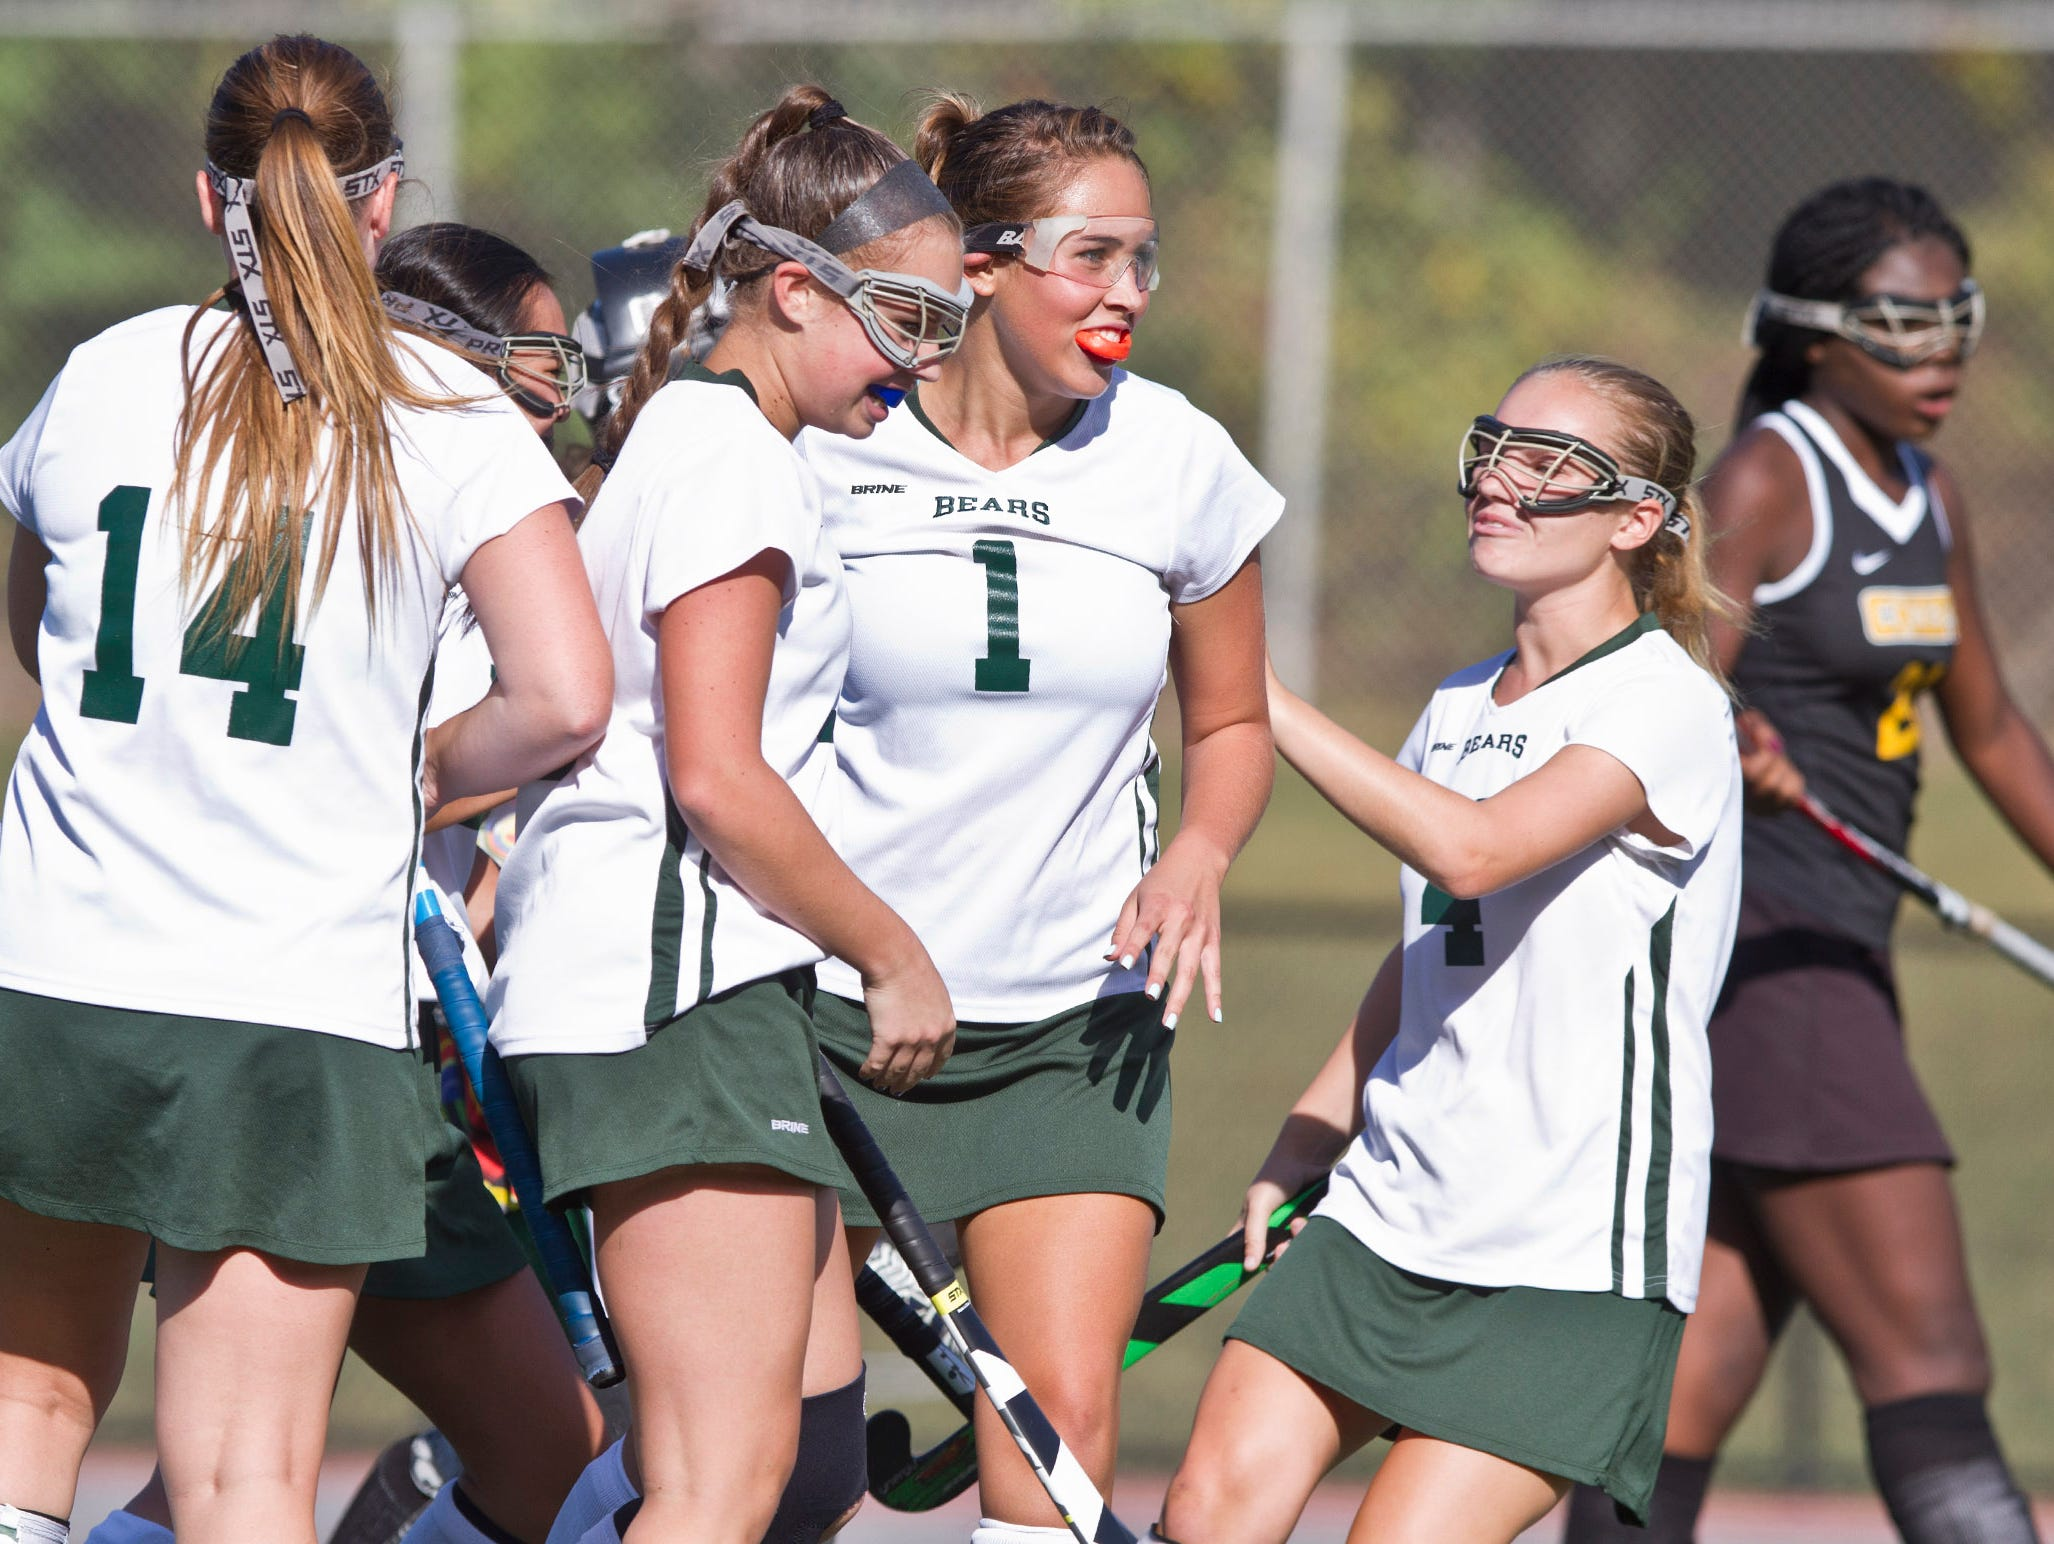 East Brunswick's Sydney Huang celebrates with teammates after scoring a goal. Piscataway vs East Brunswick field hockey. 72670492 East Brunswick, NJ Thursday, September 24, 2015 @dhoodhood